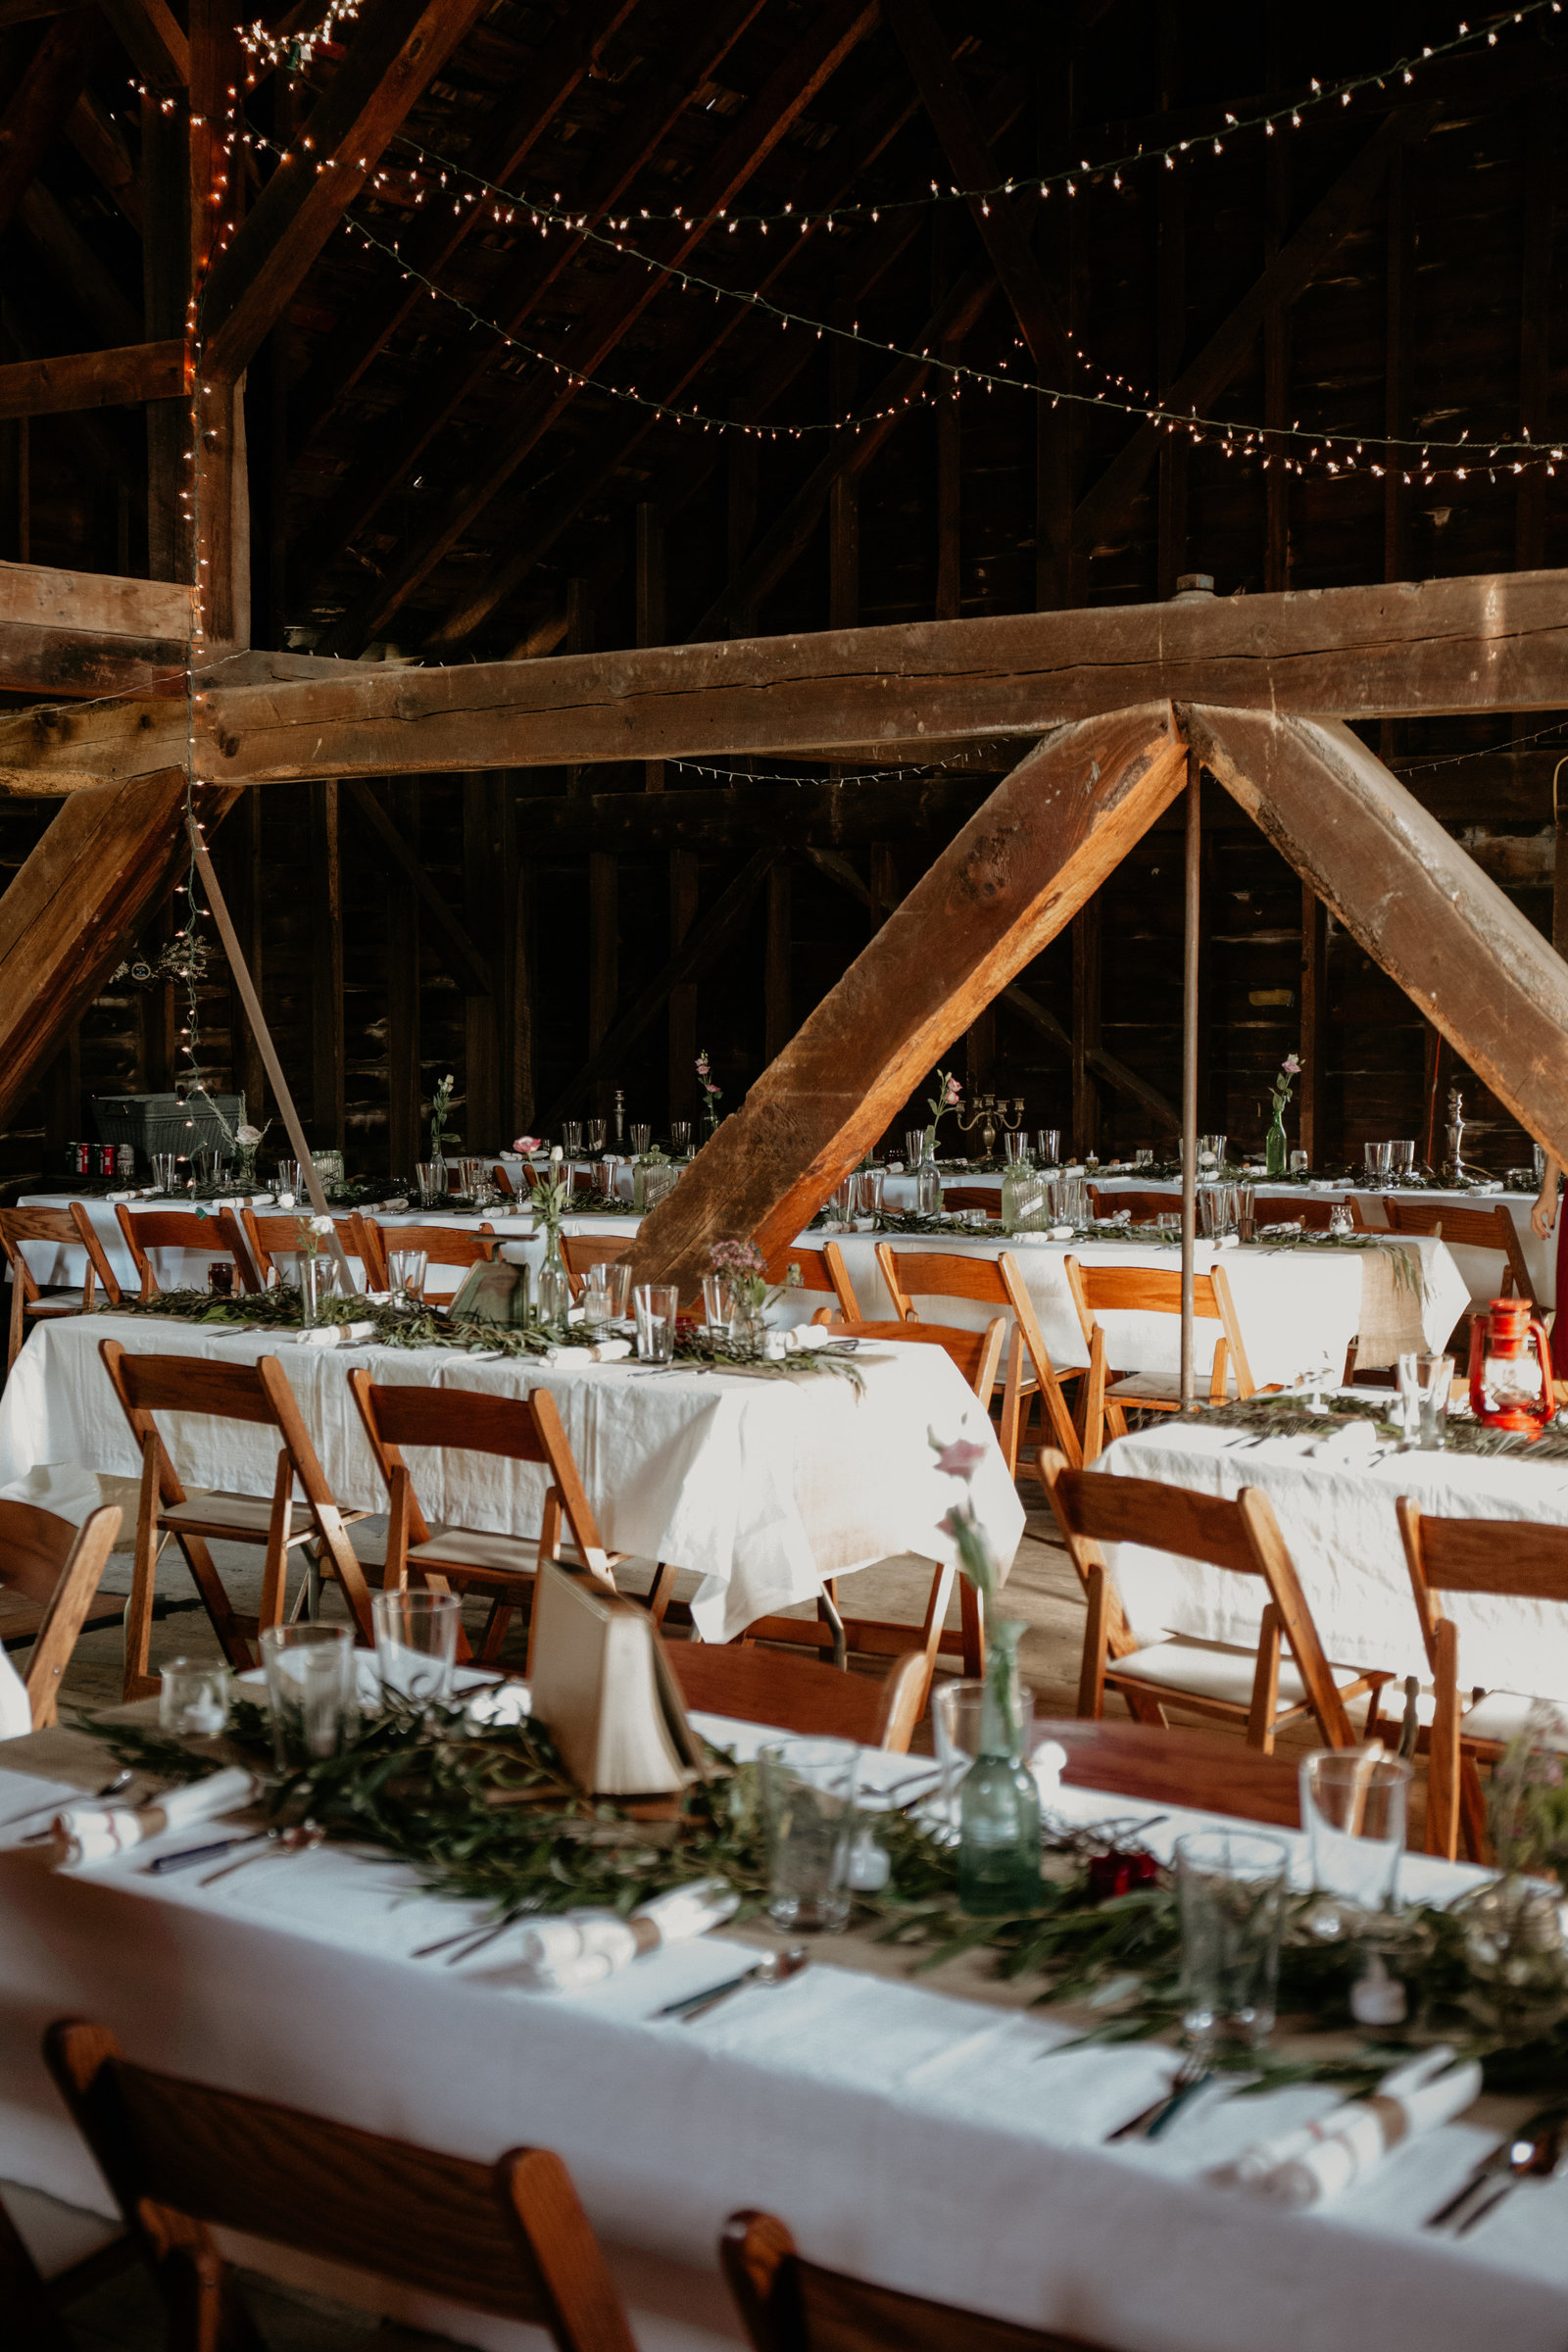 Barn reception setup in Catskill, New York.